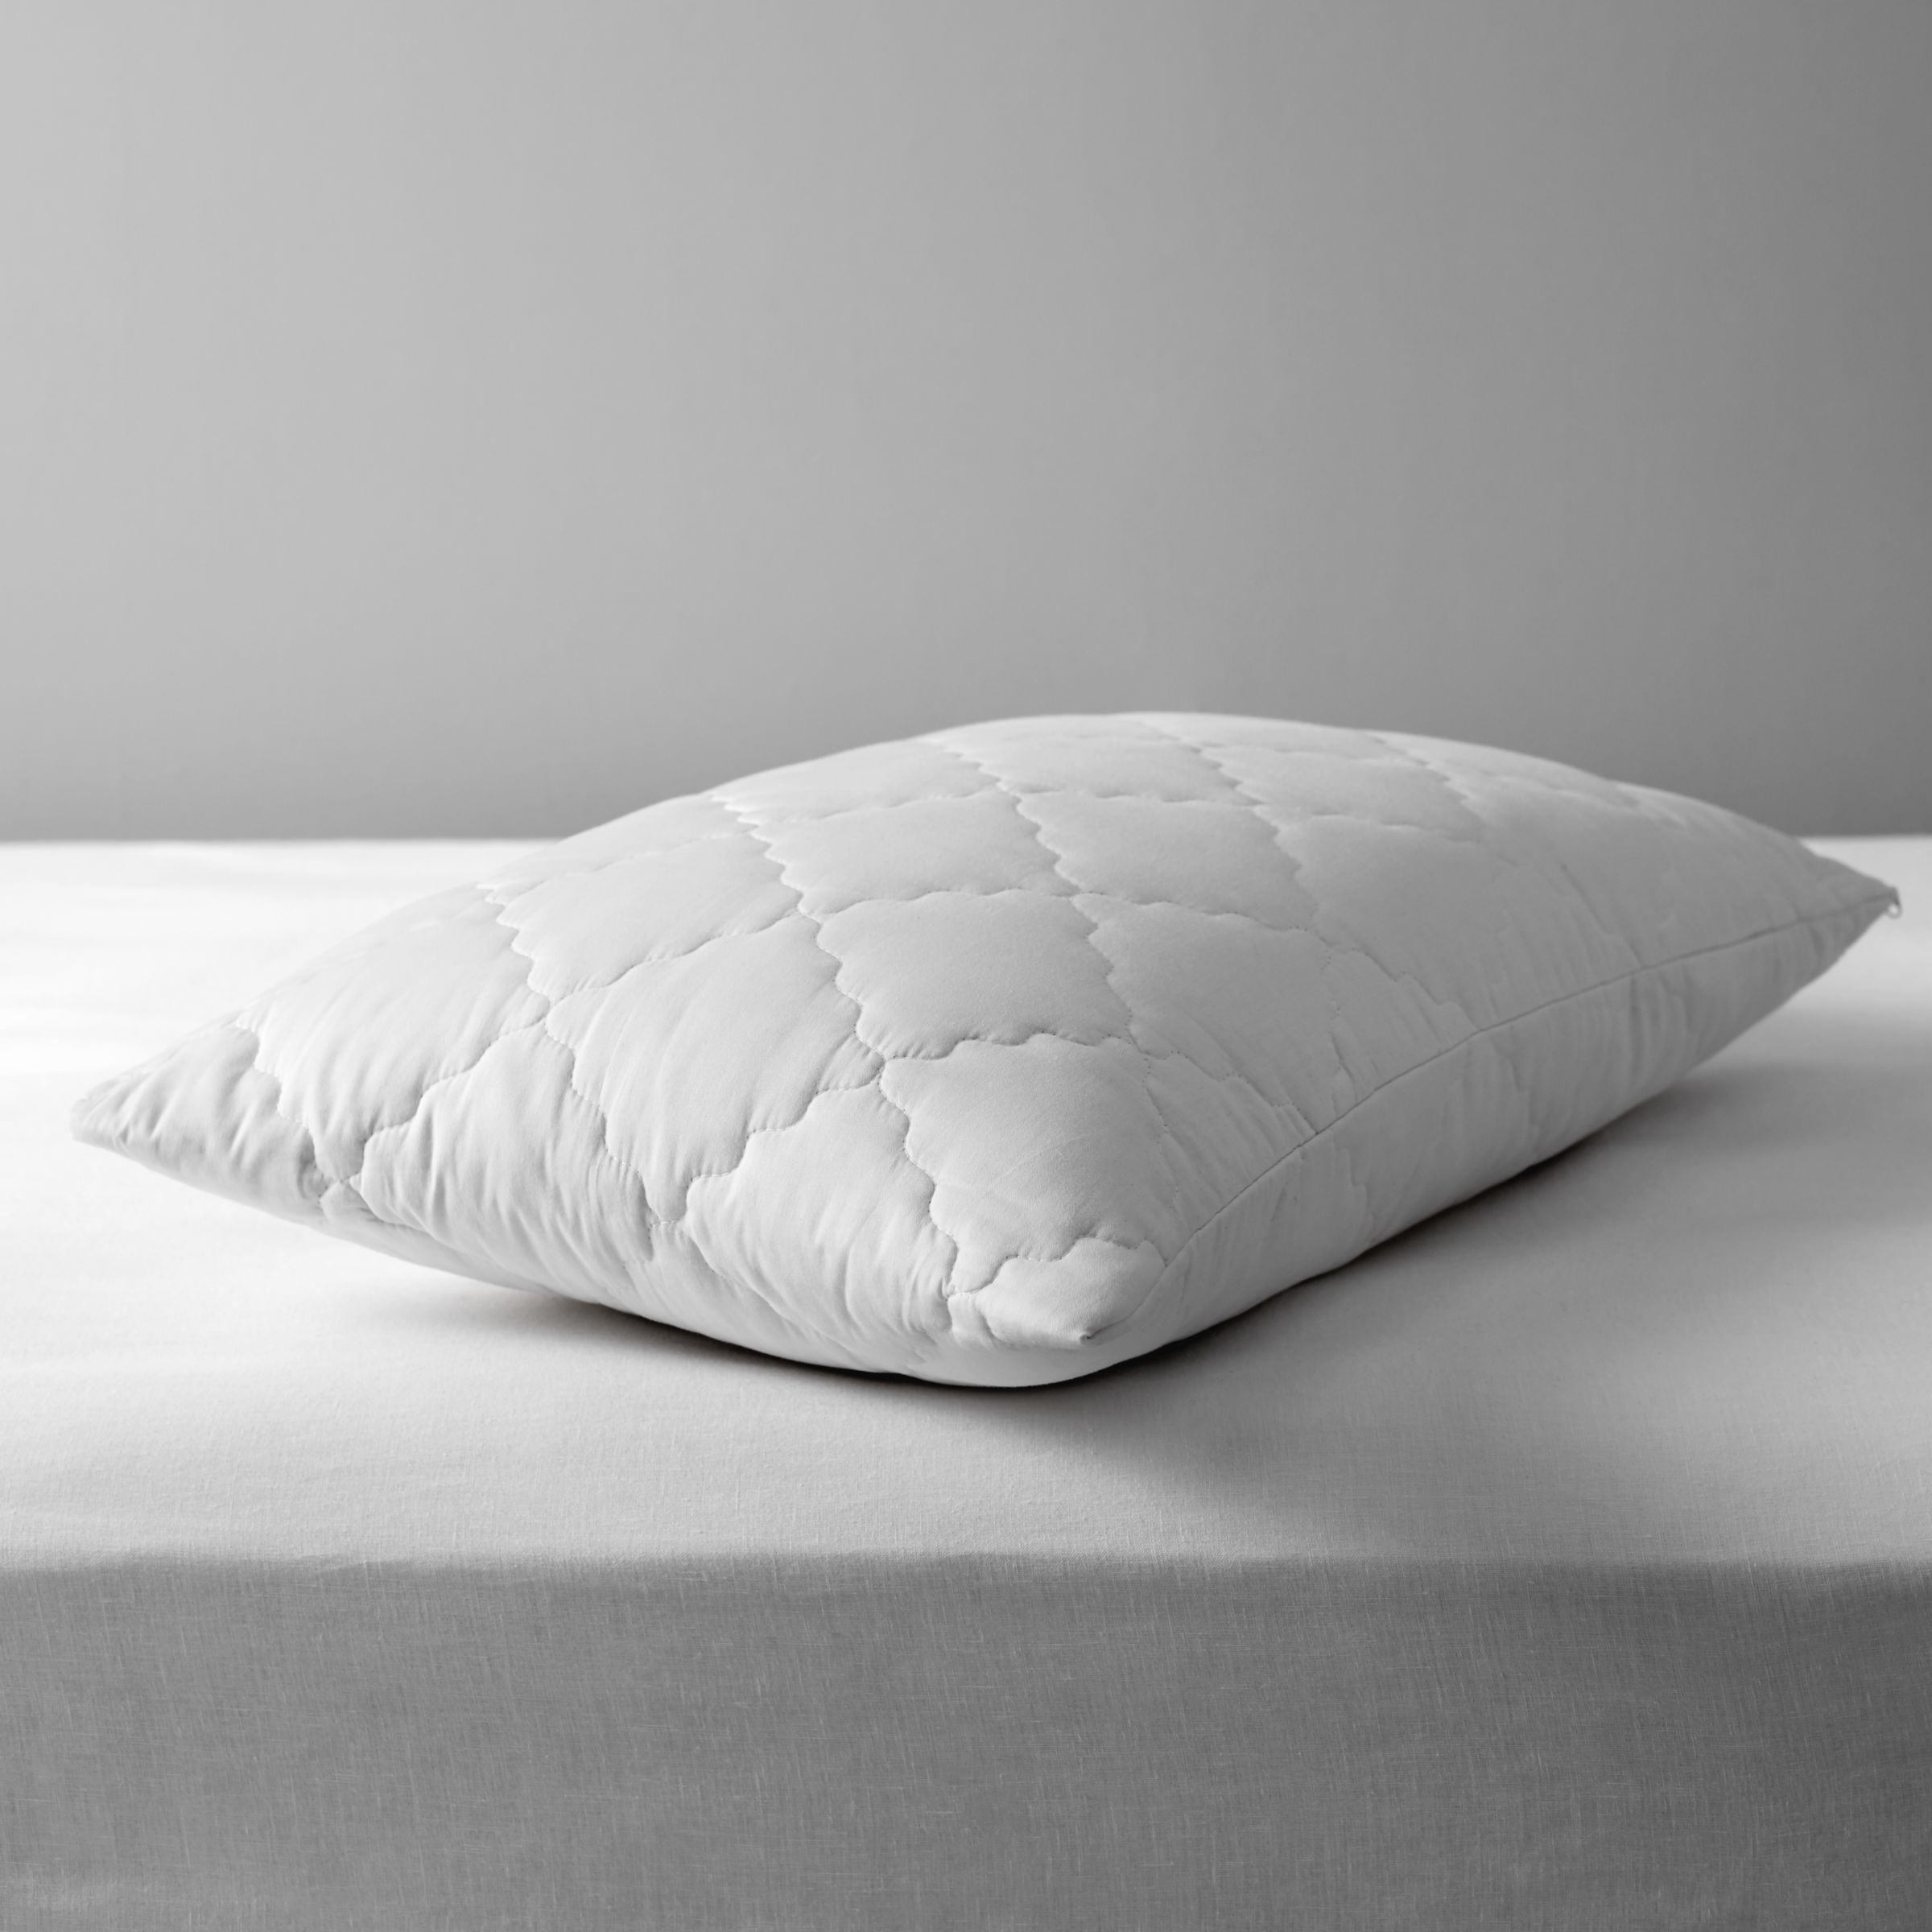 John Lewis & Partners Natural Collection Pure Cotton Quilted Standard Pillow Enhancer